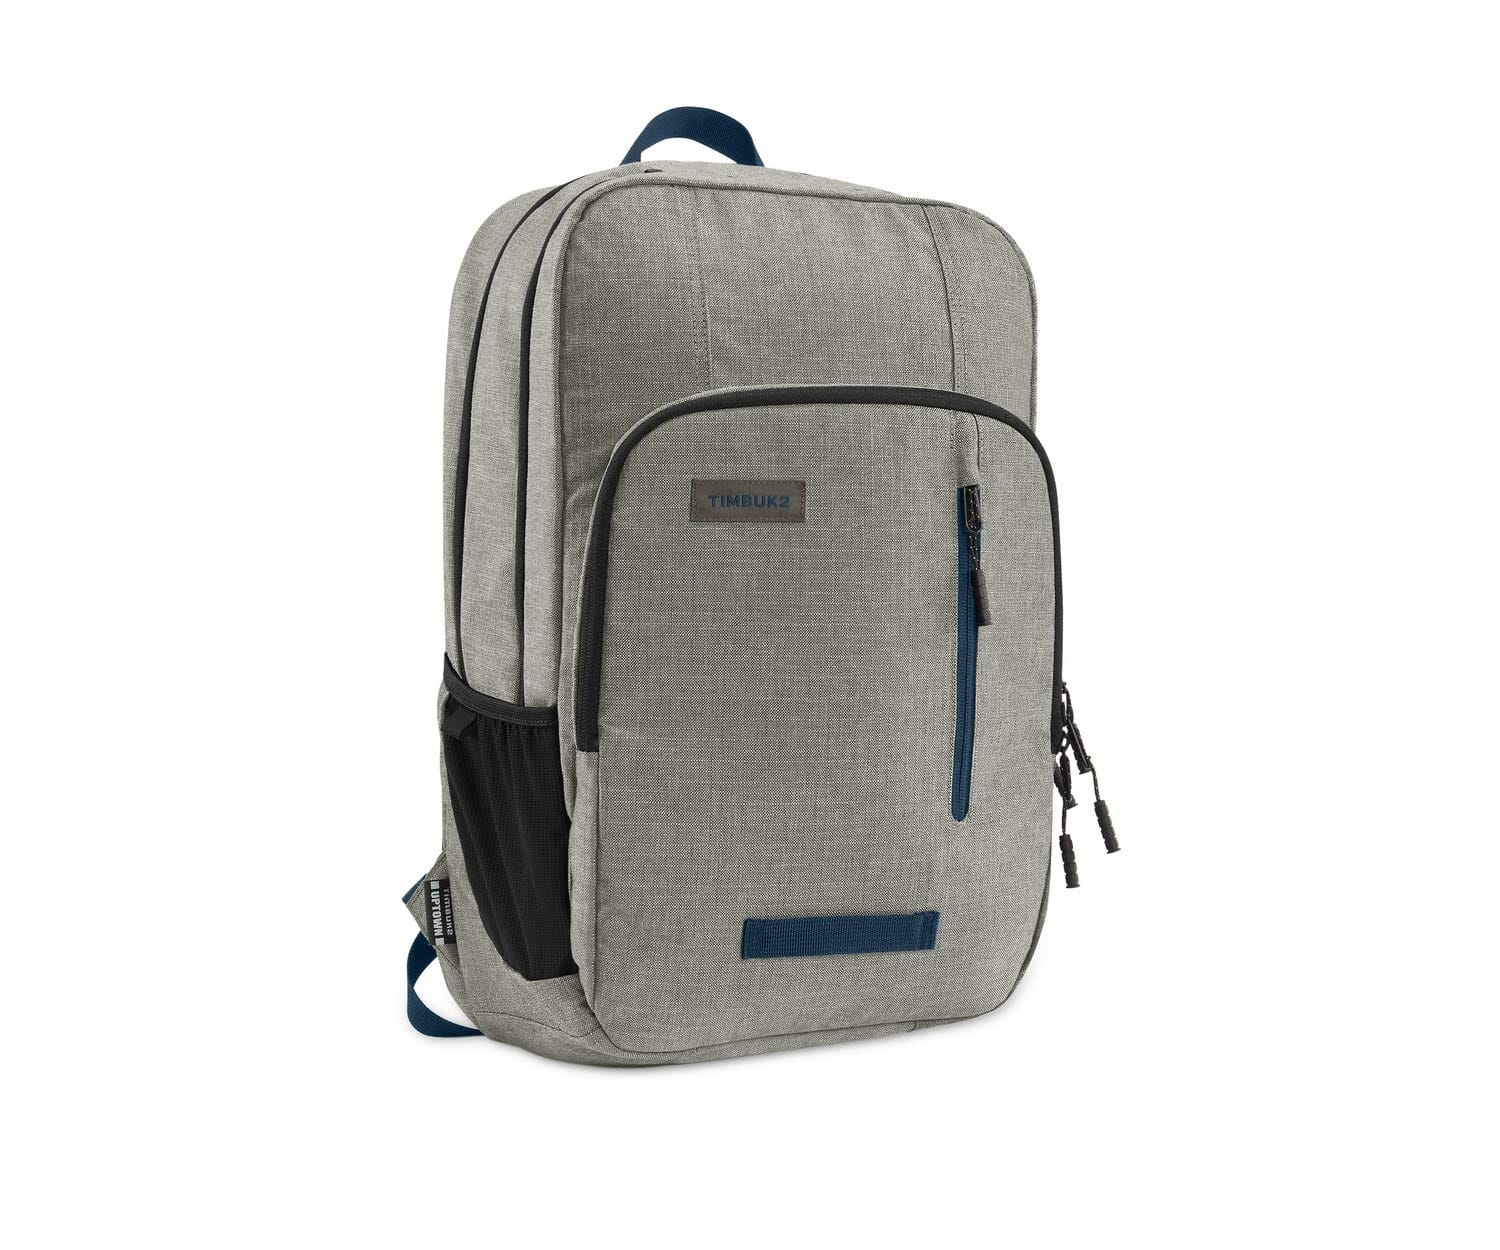 Timbuk2 Uptown Laptop Travel-Friendly Backpack [$44.90+]